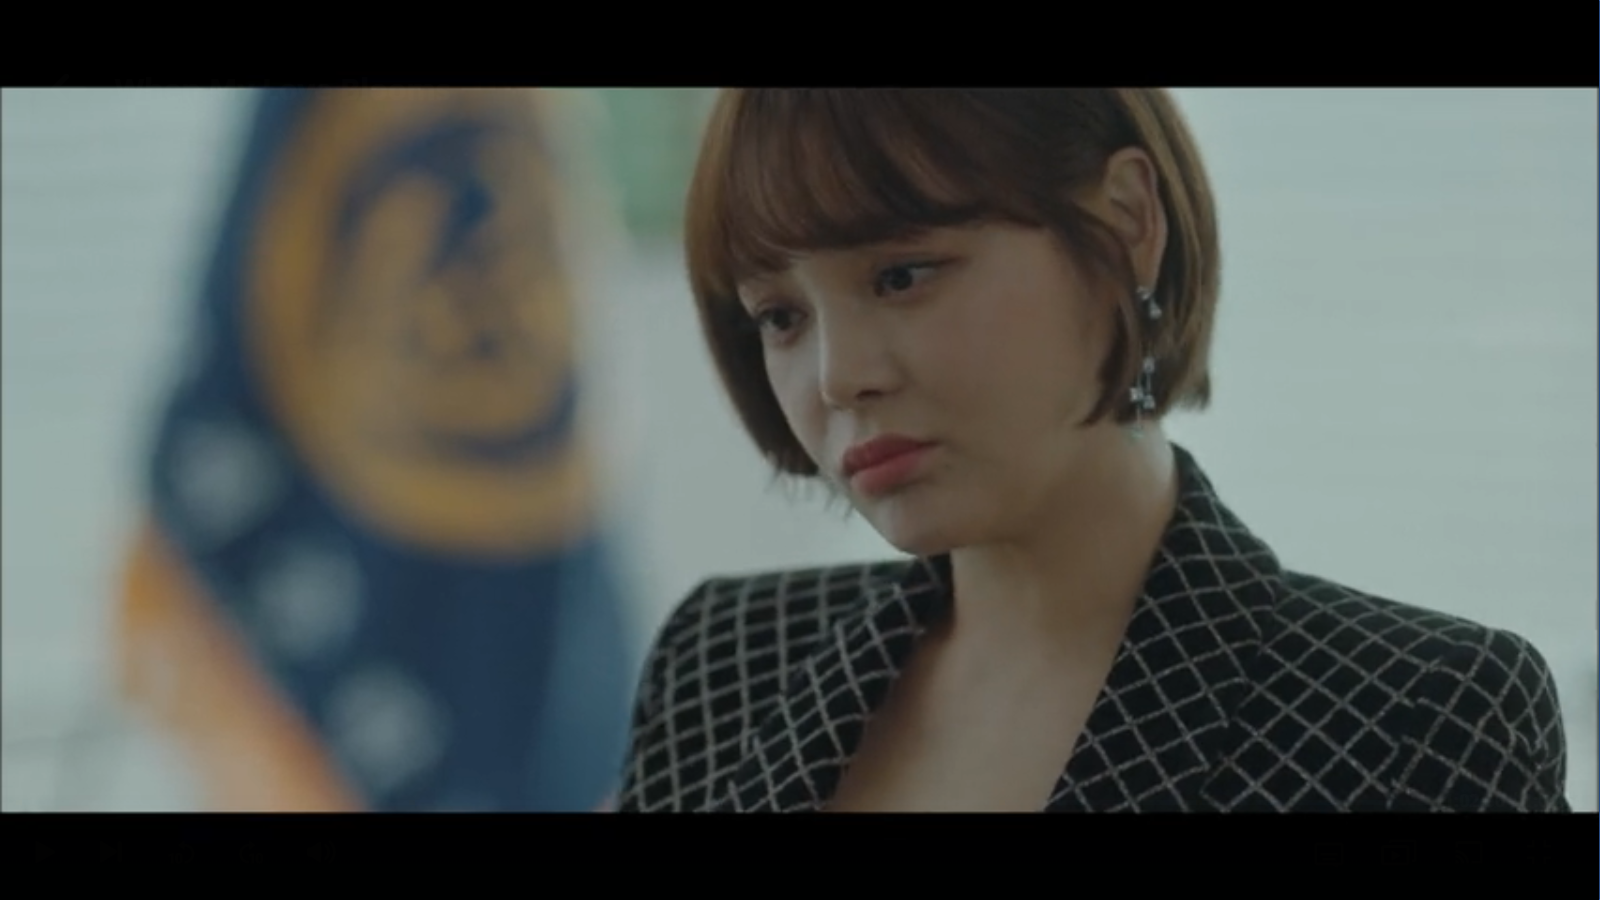 When My Love Blooms Episode 2 Seo Kyung standing in school office